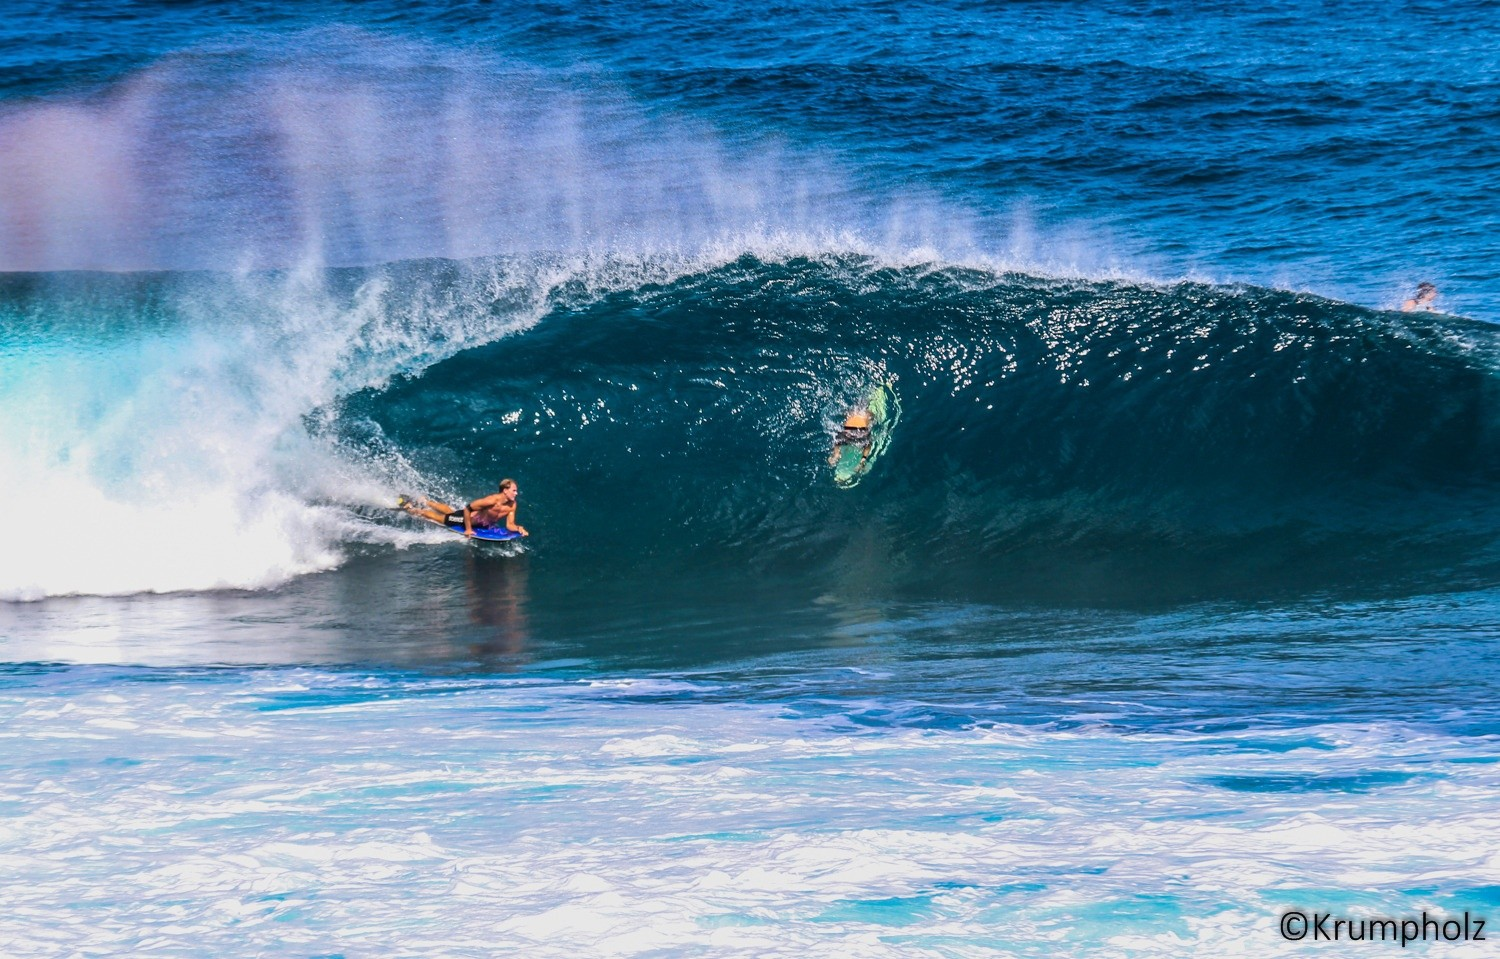 Max Krumpholz's photo of Pipeline & Backdoor